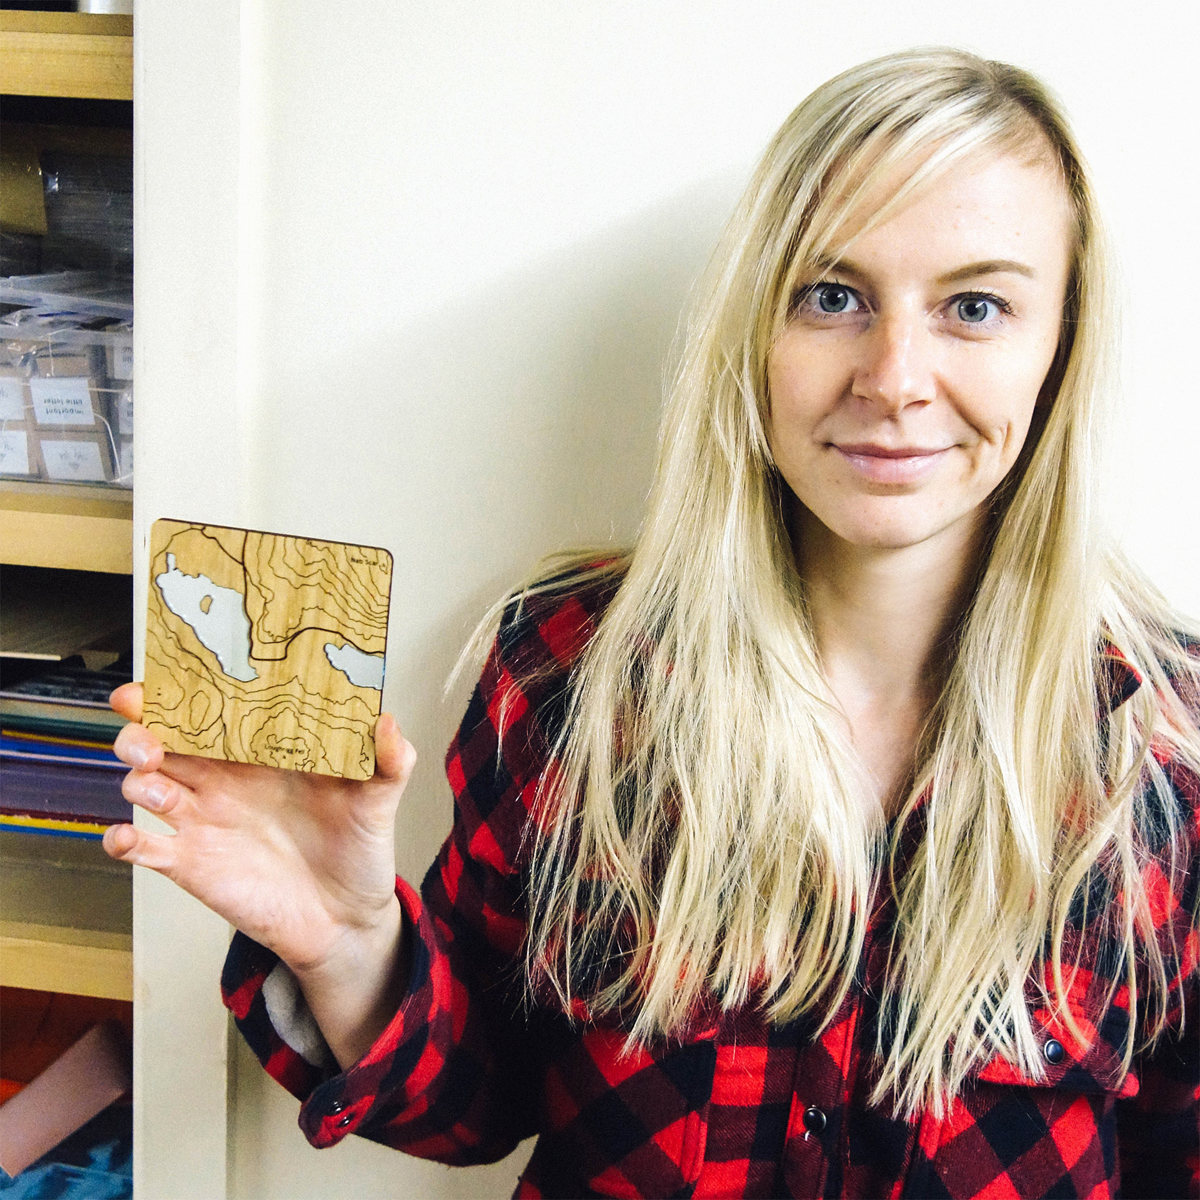 Debs Slater of Alp and Ash with one of her topographic coasters